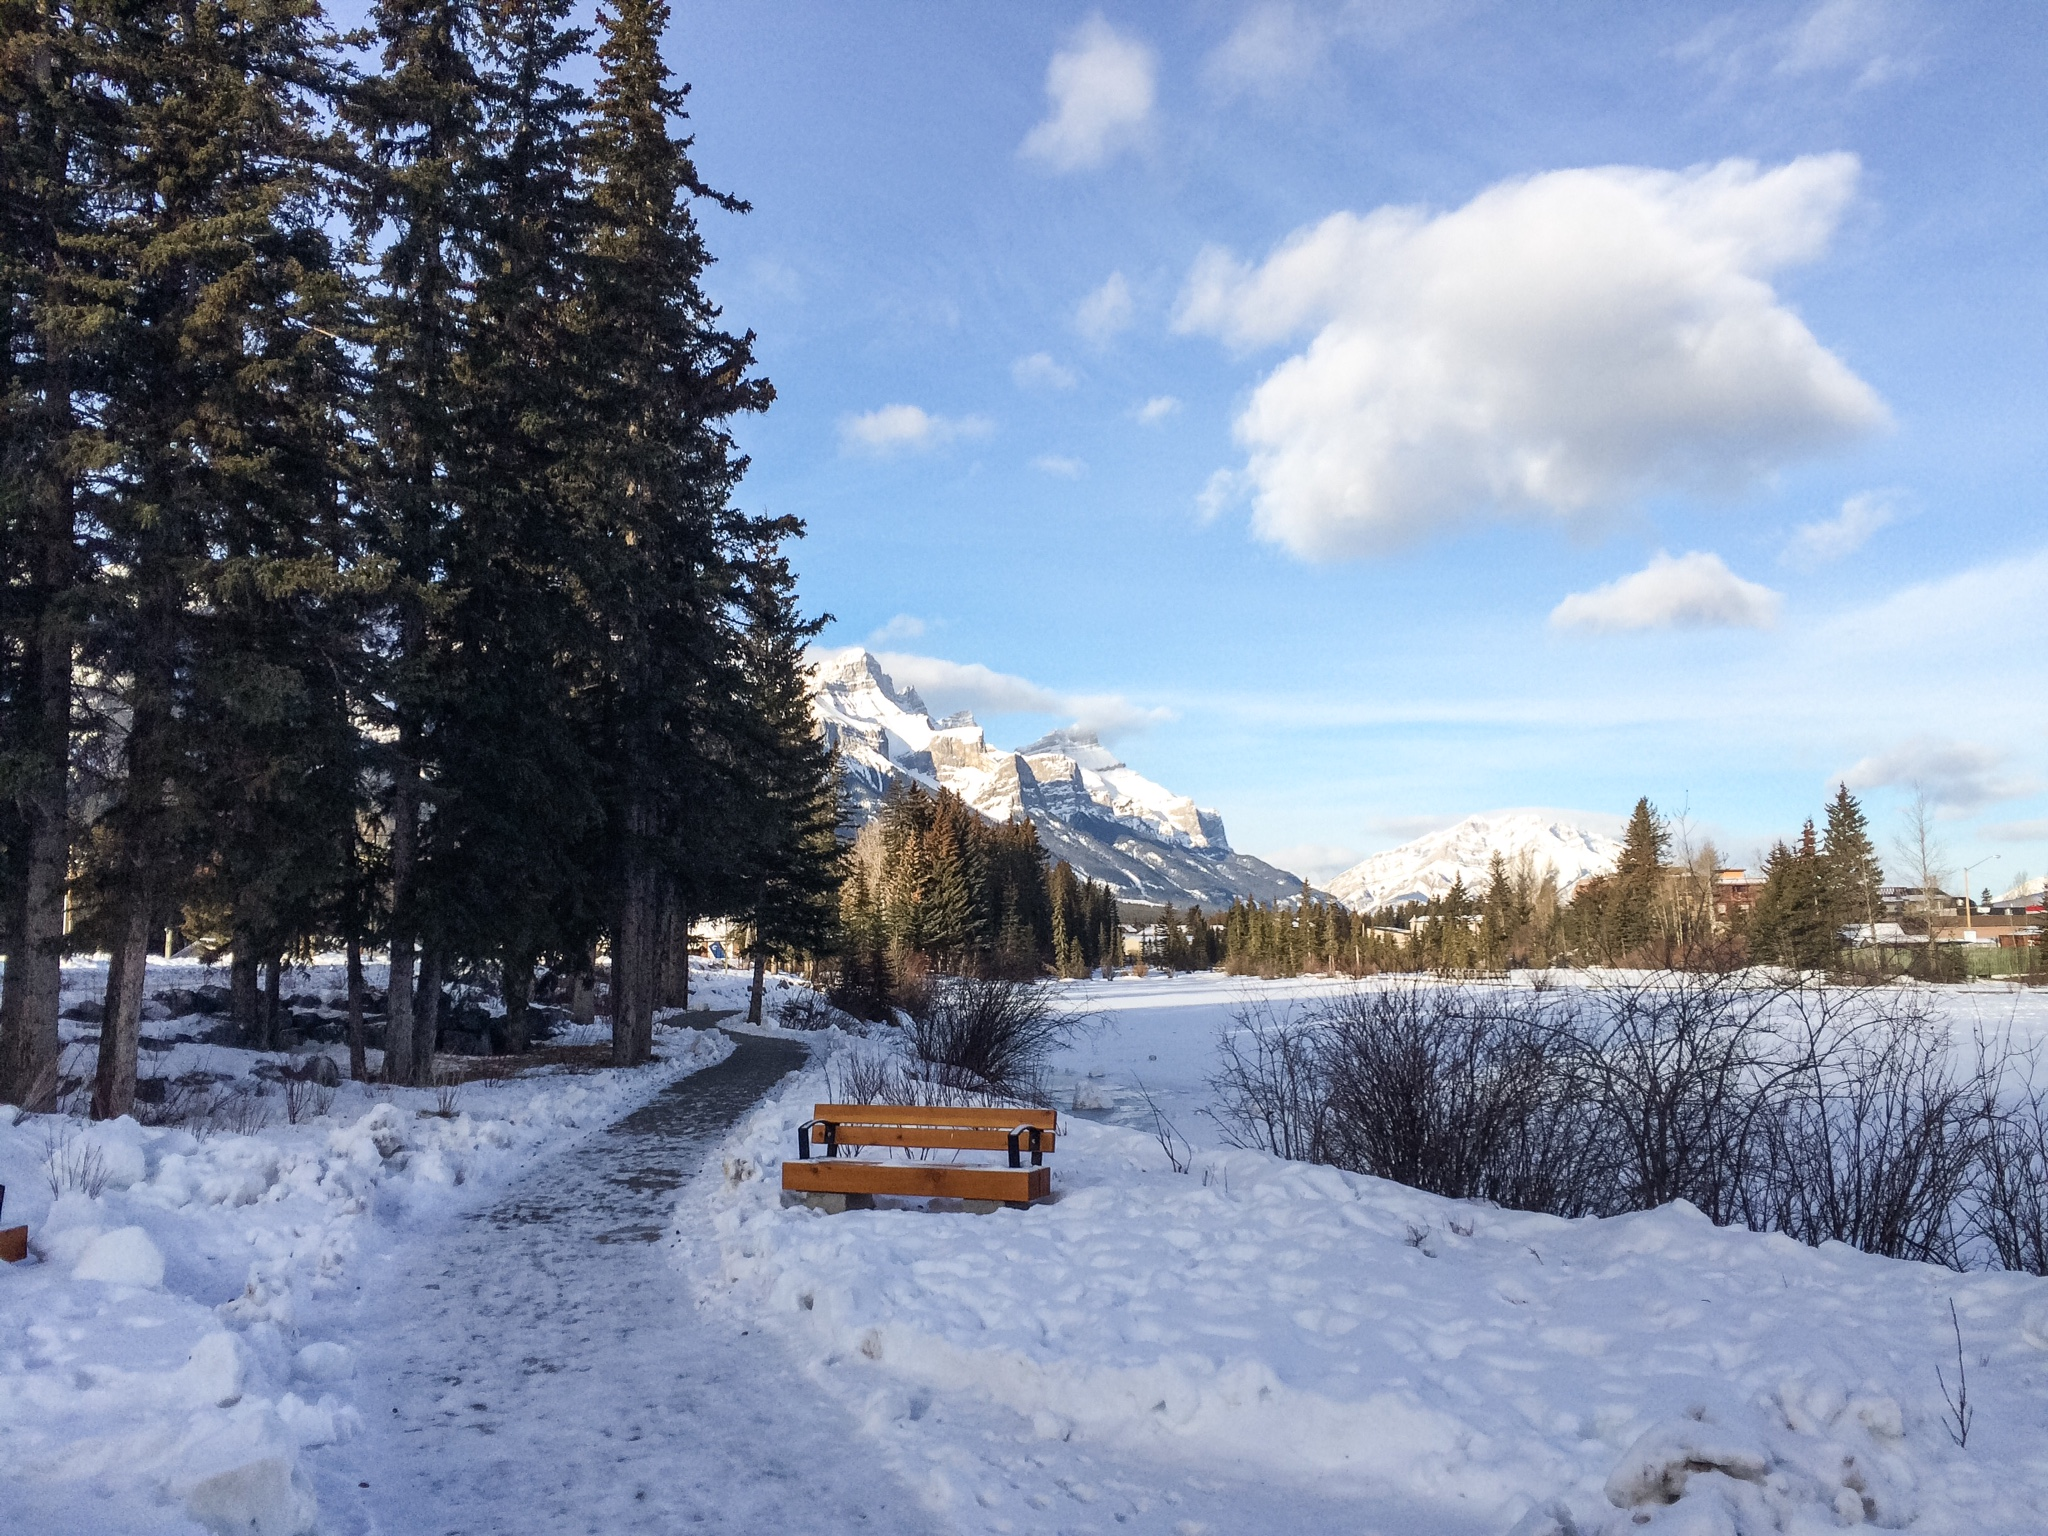 Sti langs Bow River i Canmore.